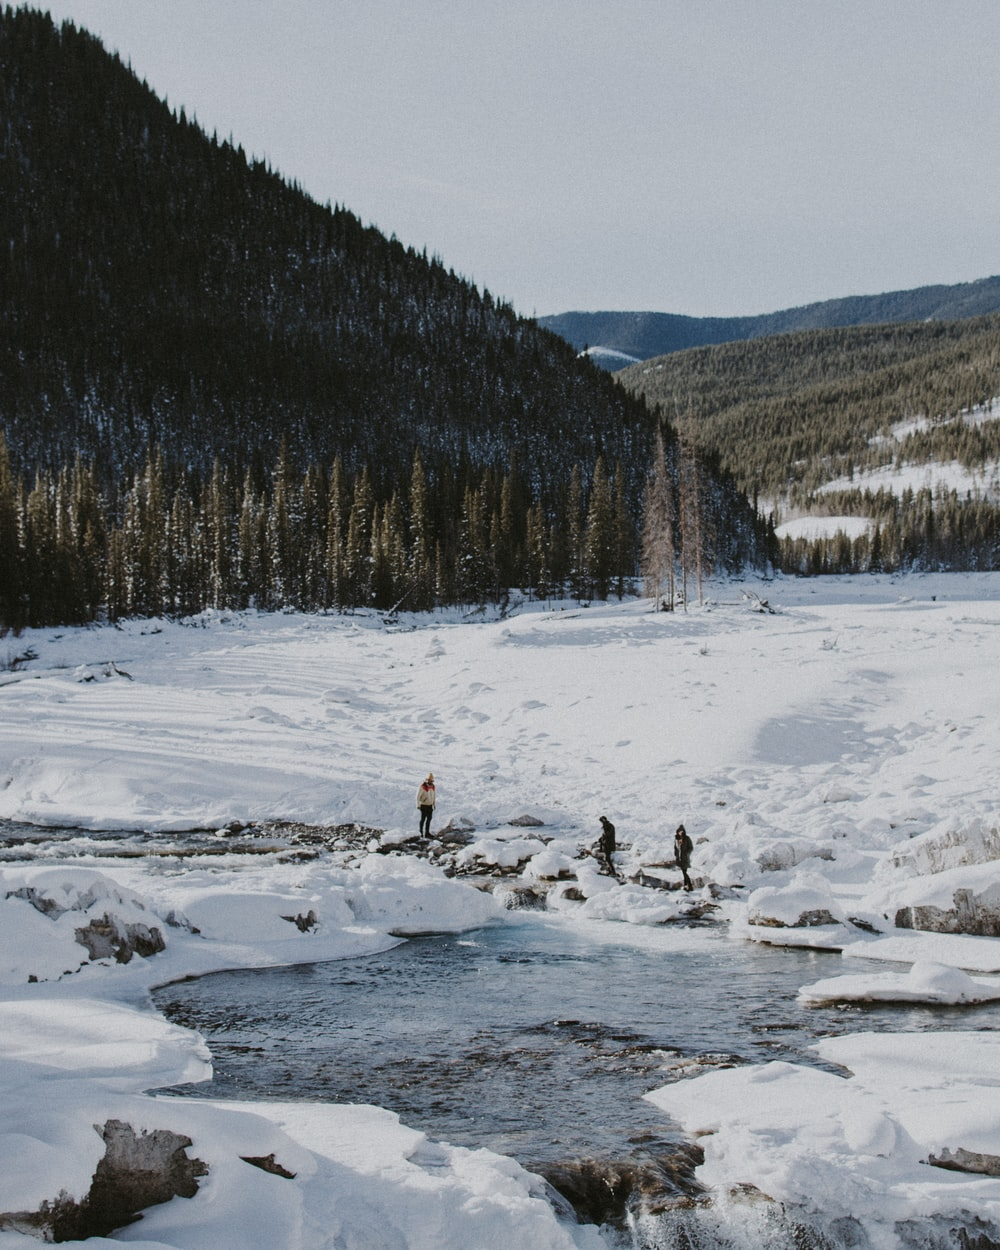 three people standing on snow near body of water during daytim